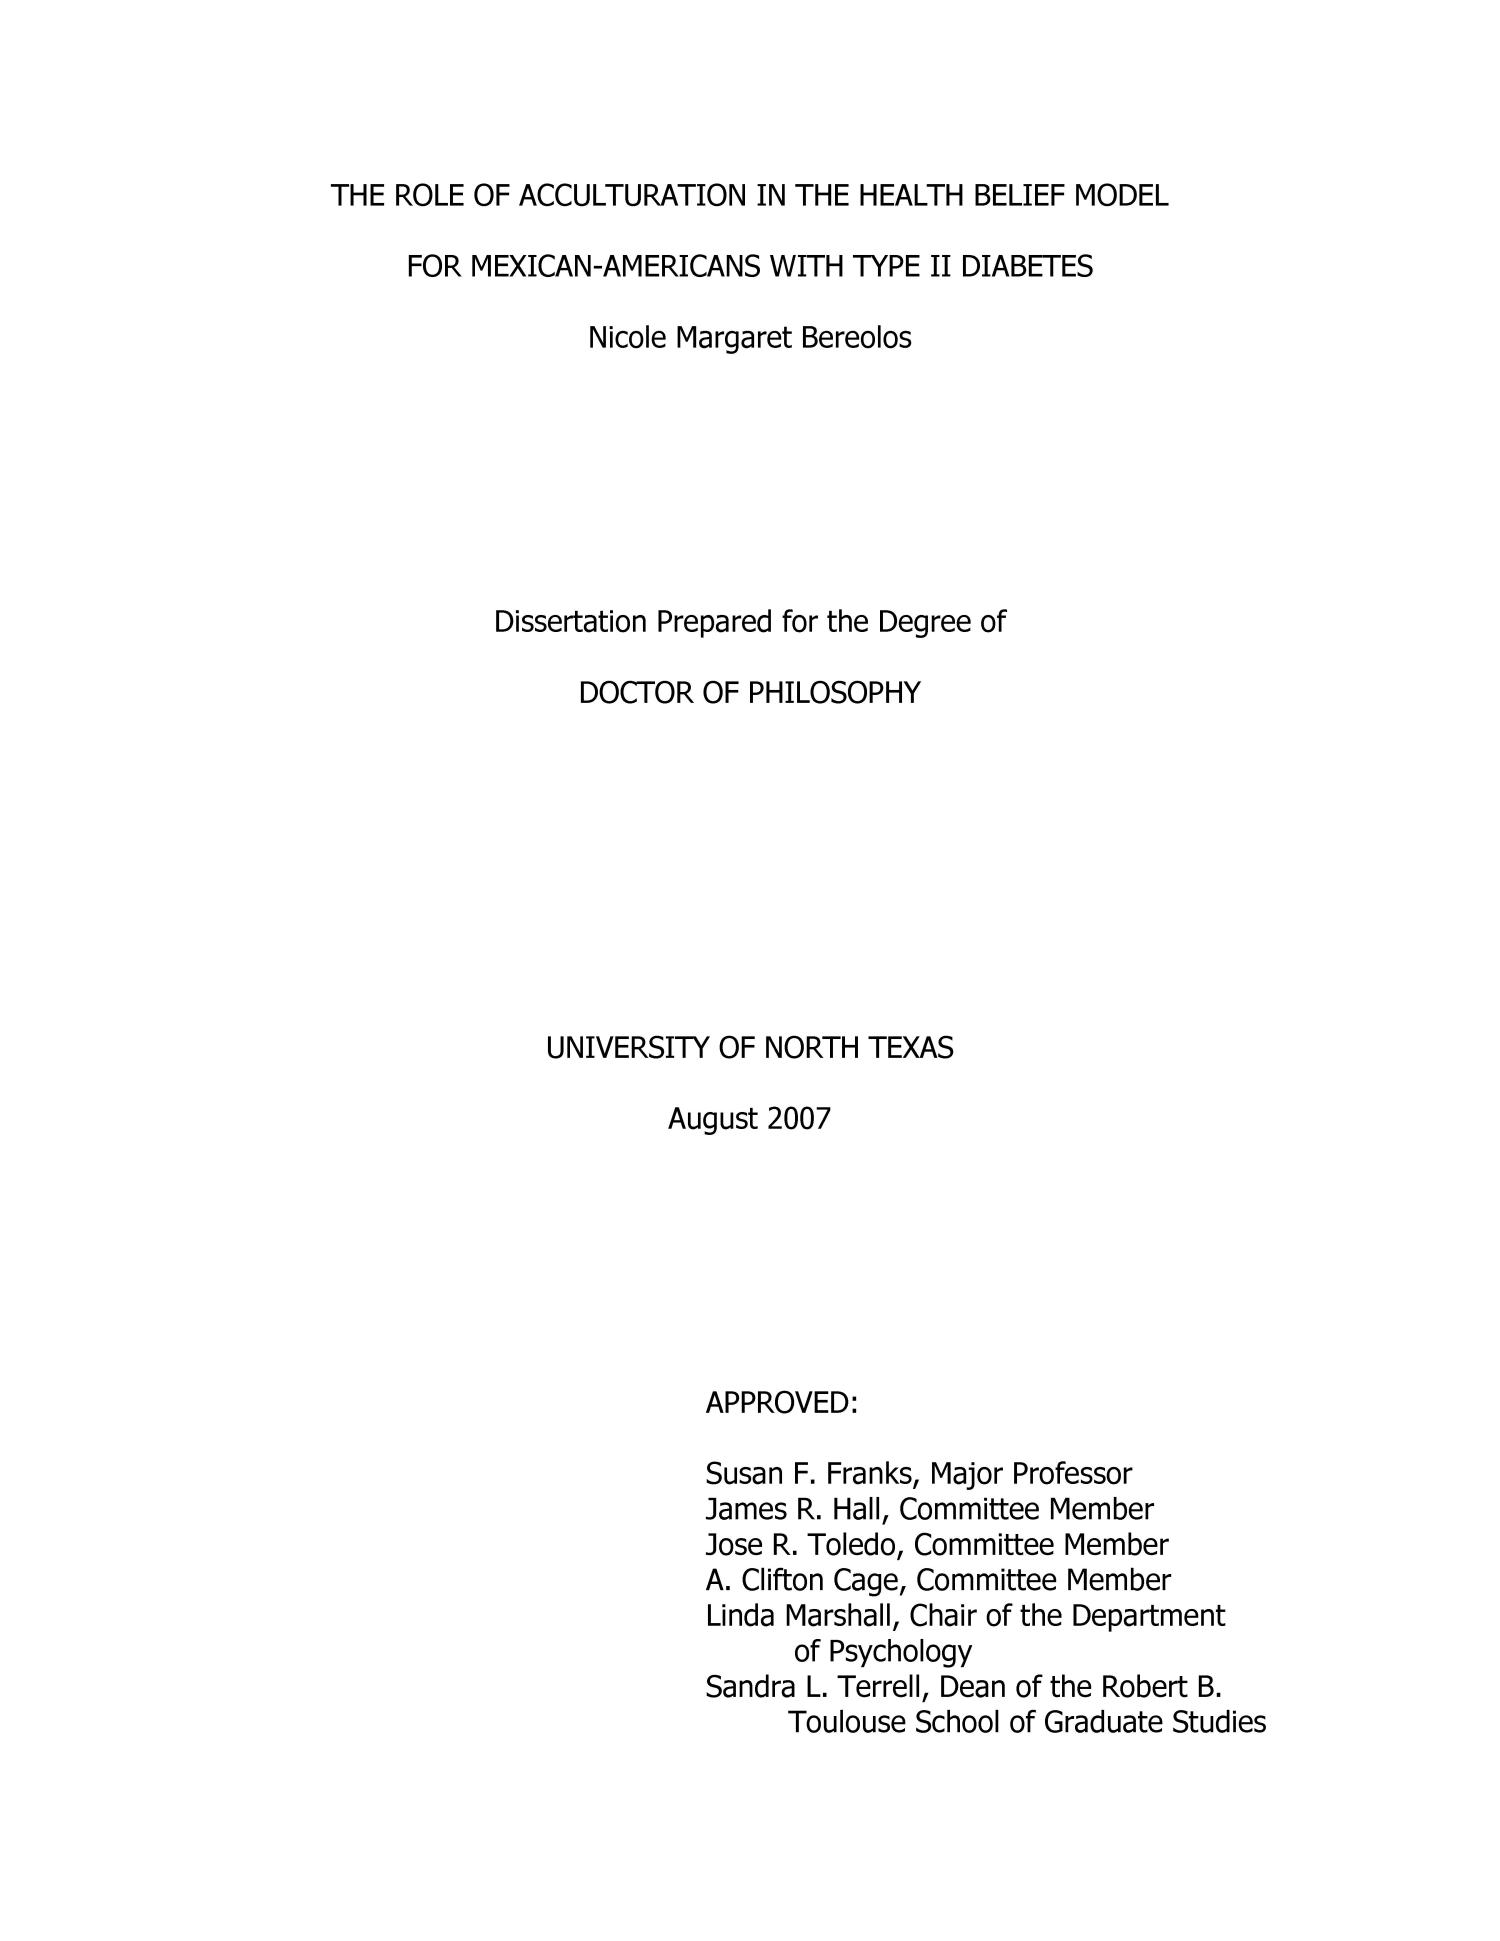 dissertations on lifestyle diseases